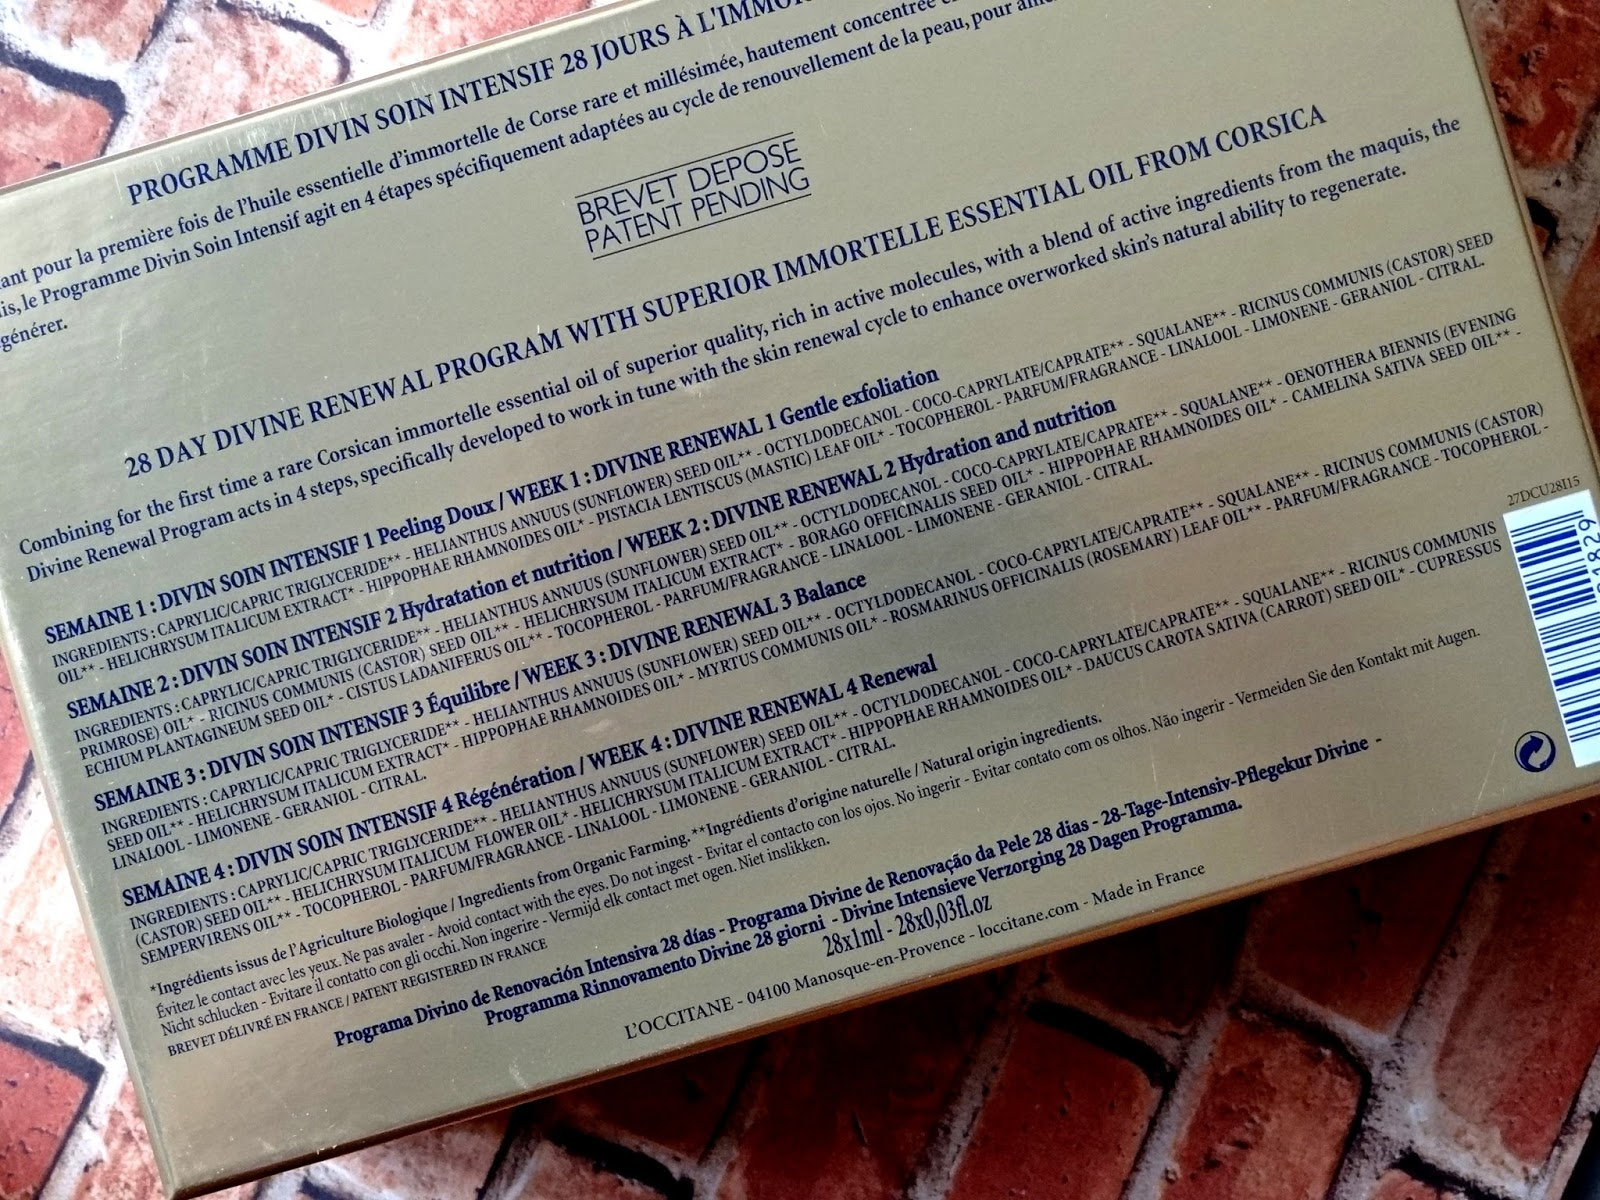 L'Occitane Immortelle 28 Day Divine Renewal Program Ingredients